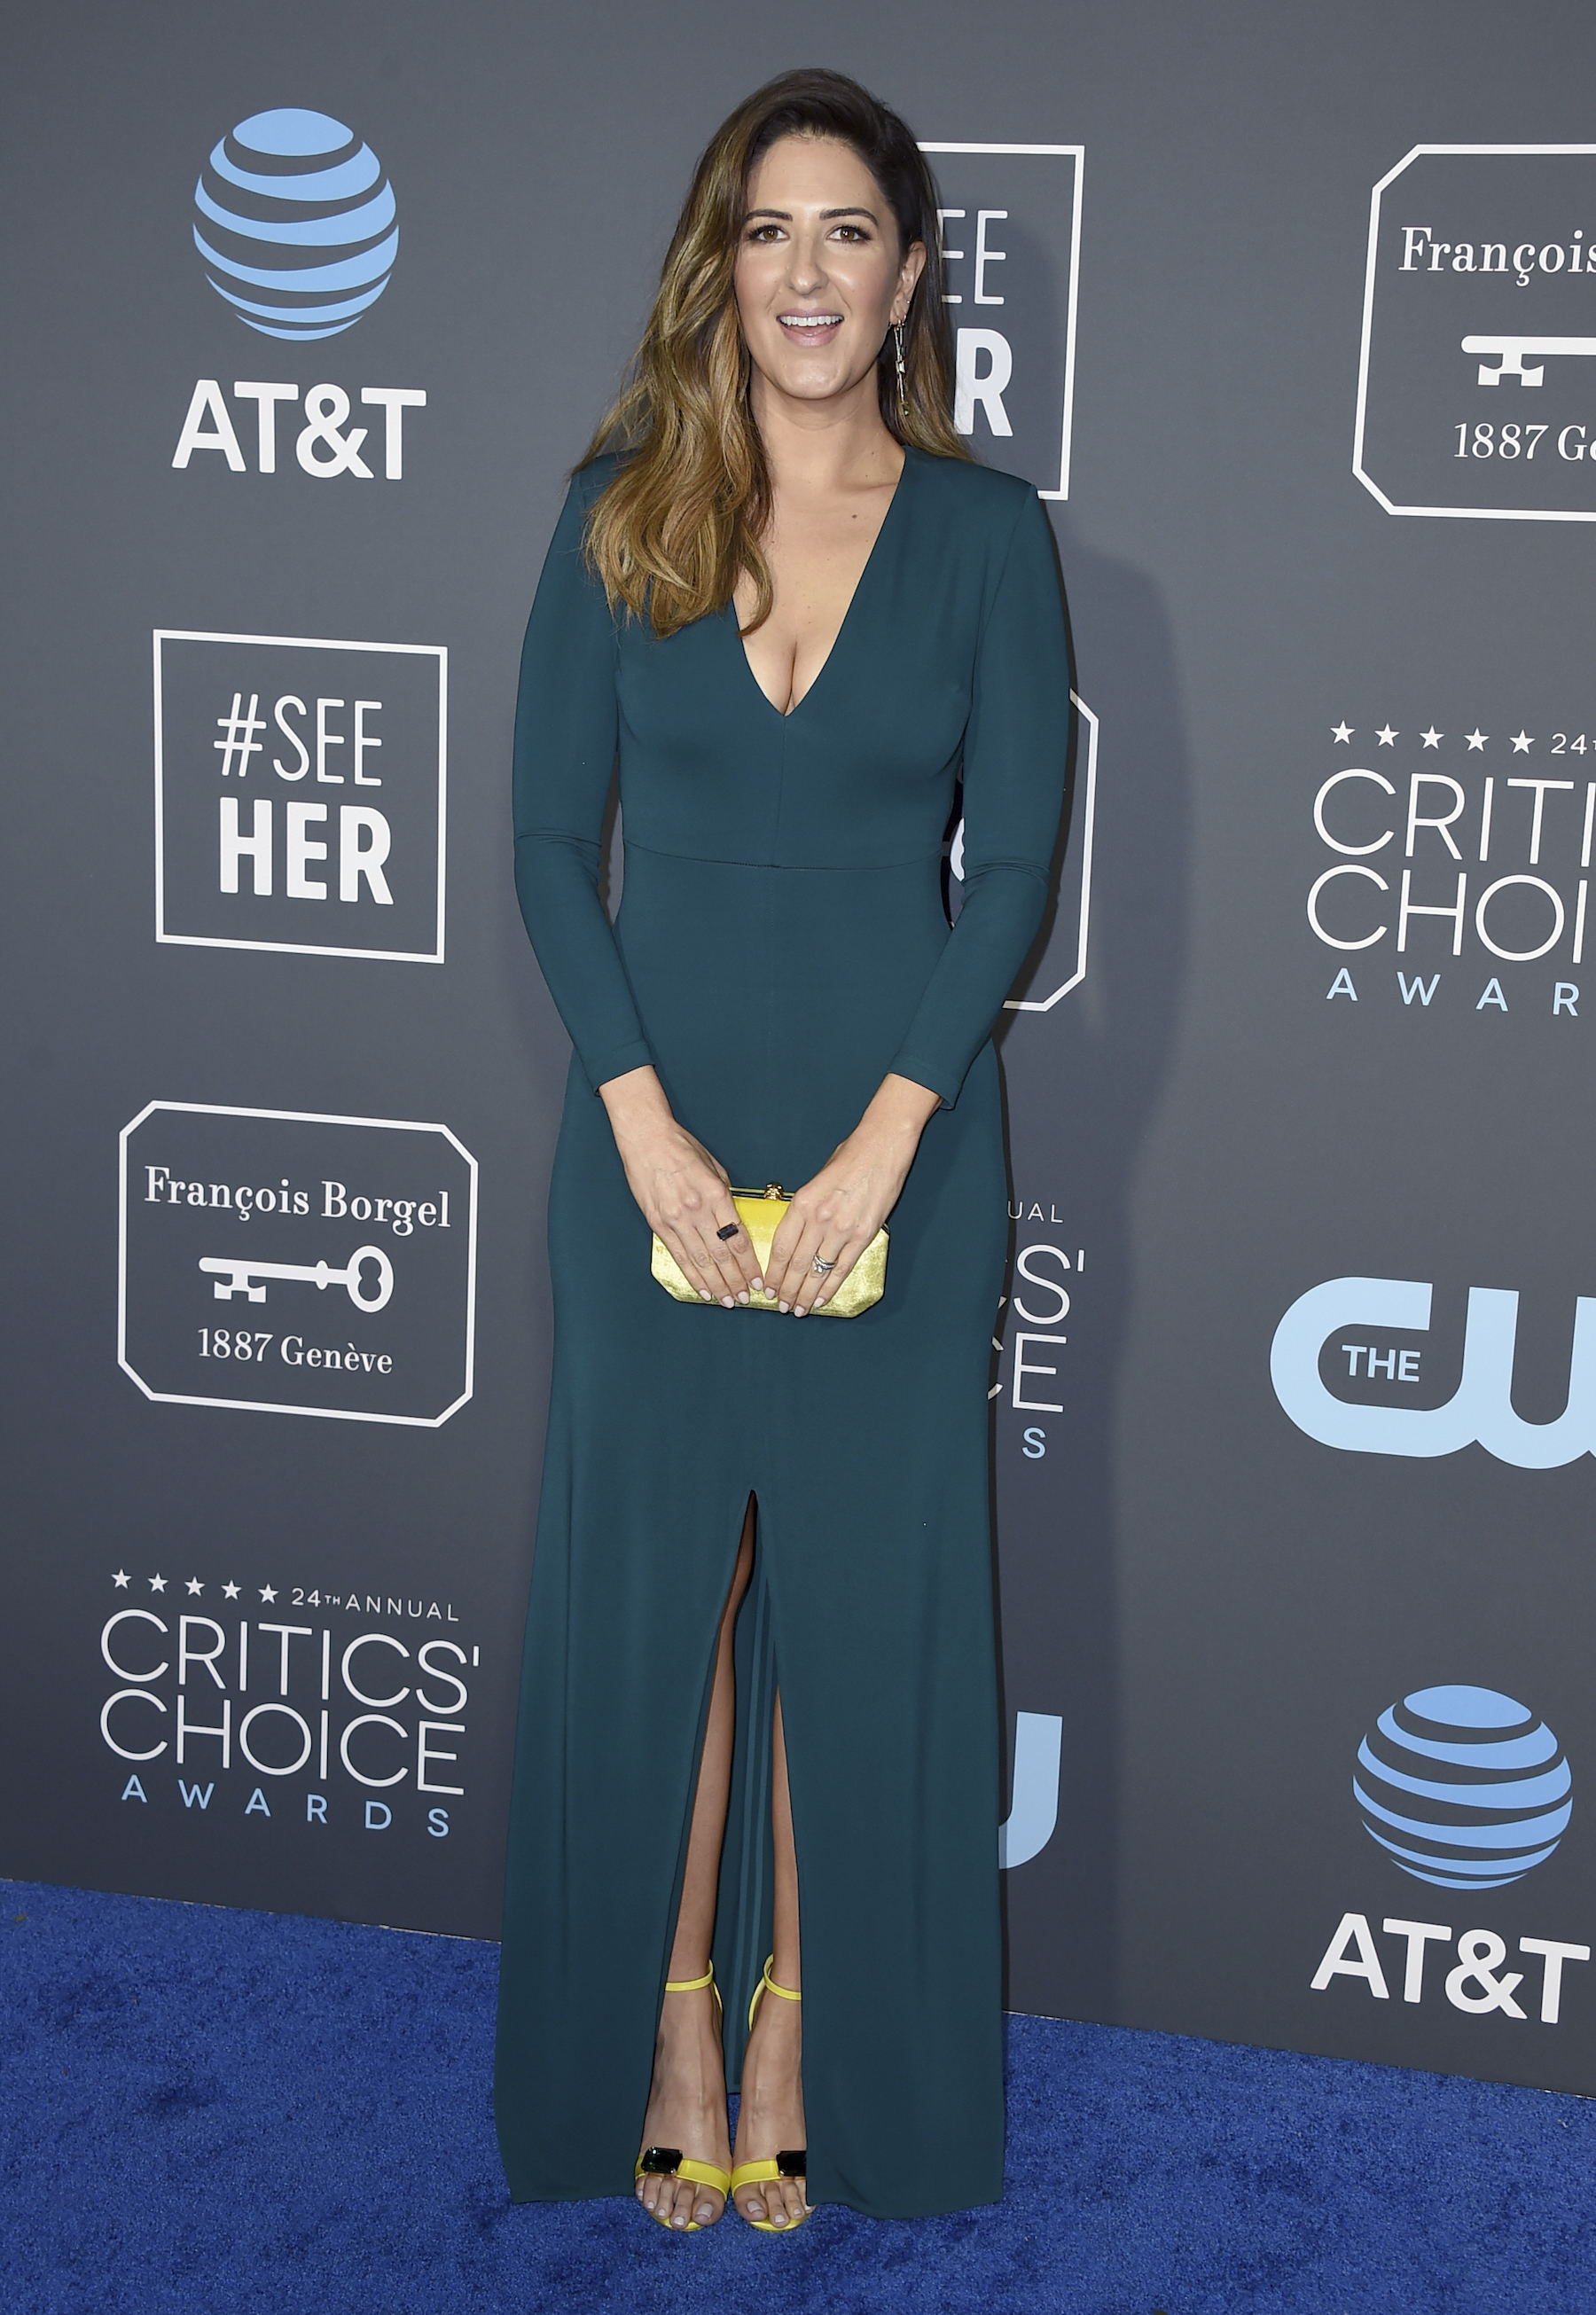 <div class='meta'><div class='origin-logo' data-origin='AP'></div><span class='caption-text' data-credit='Jordan Strauss/Invision/AP'>D'Arcy Carden arrives at the 24th annual Critics' Choice Awards on Sunday, Jan. 13, 2019, at the Barker Hangar in Santa Monica, Calif.</span></div>